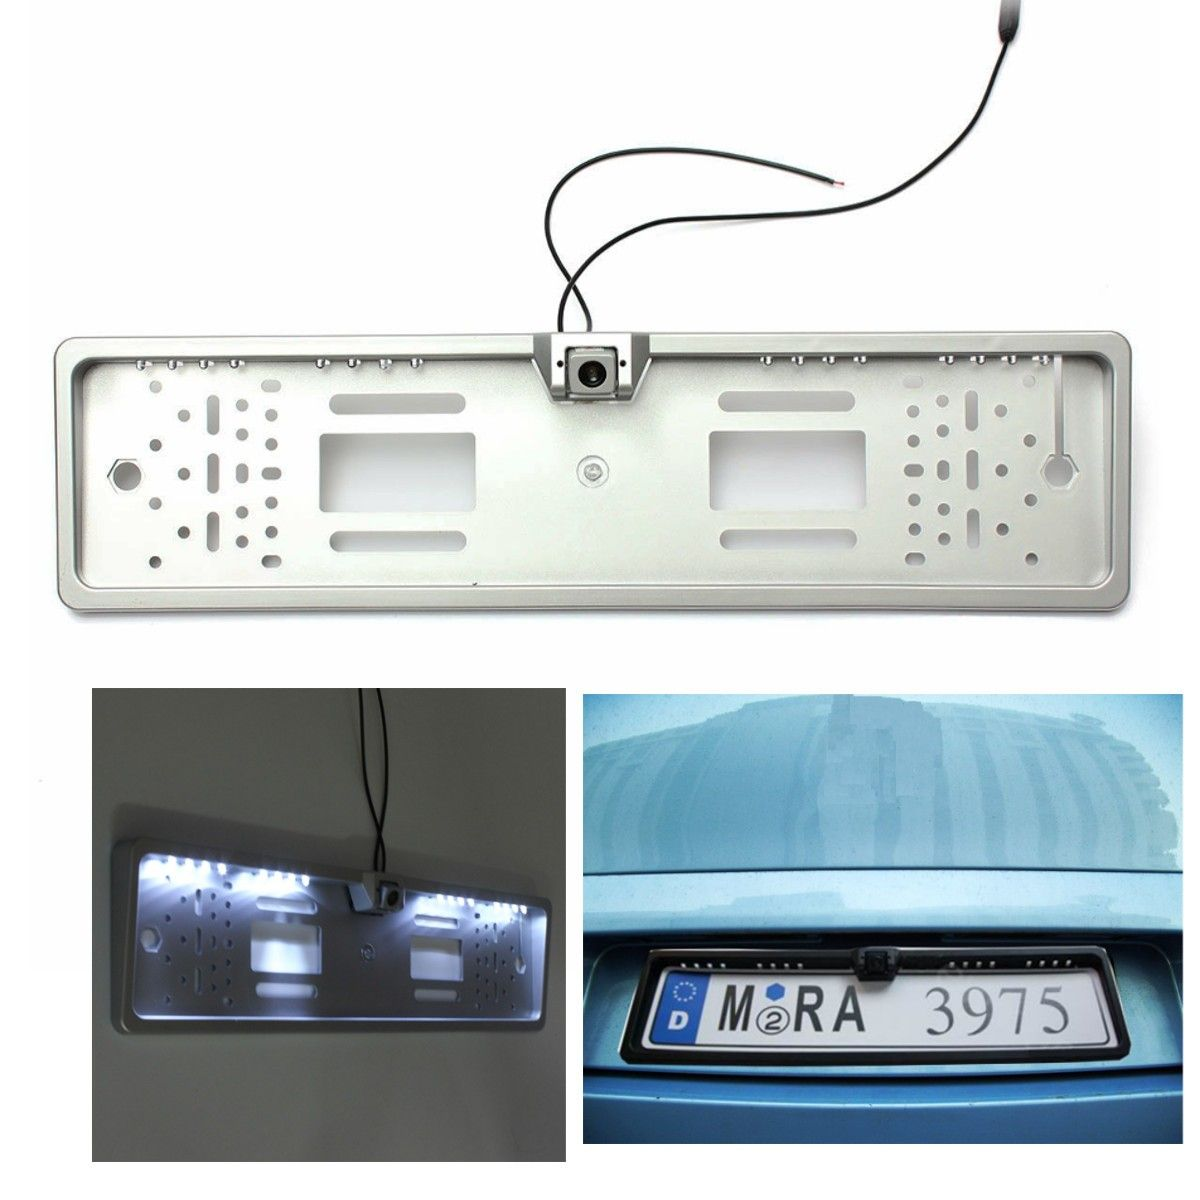 Newest Car 16 LED Number Plate Frame Light Rear View Camera Backup Parking Reversing 170 degree wide viewing angle